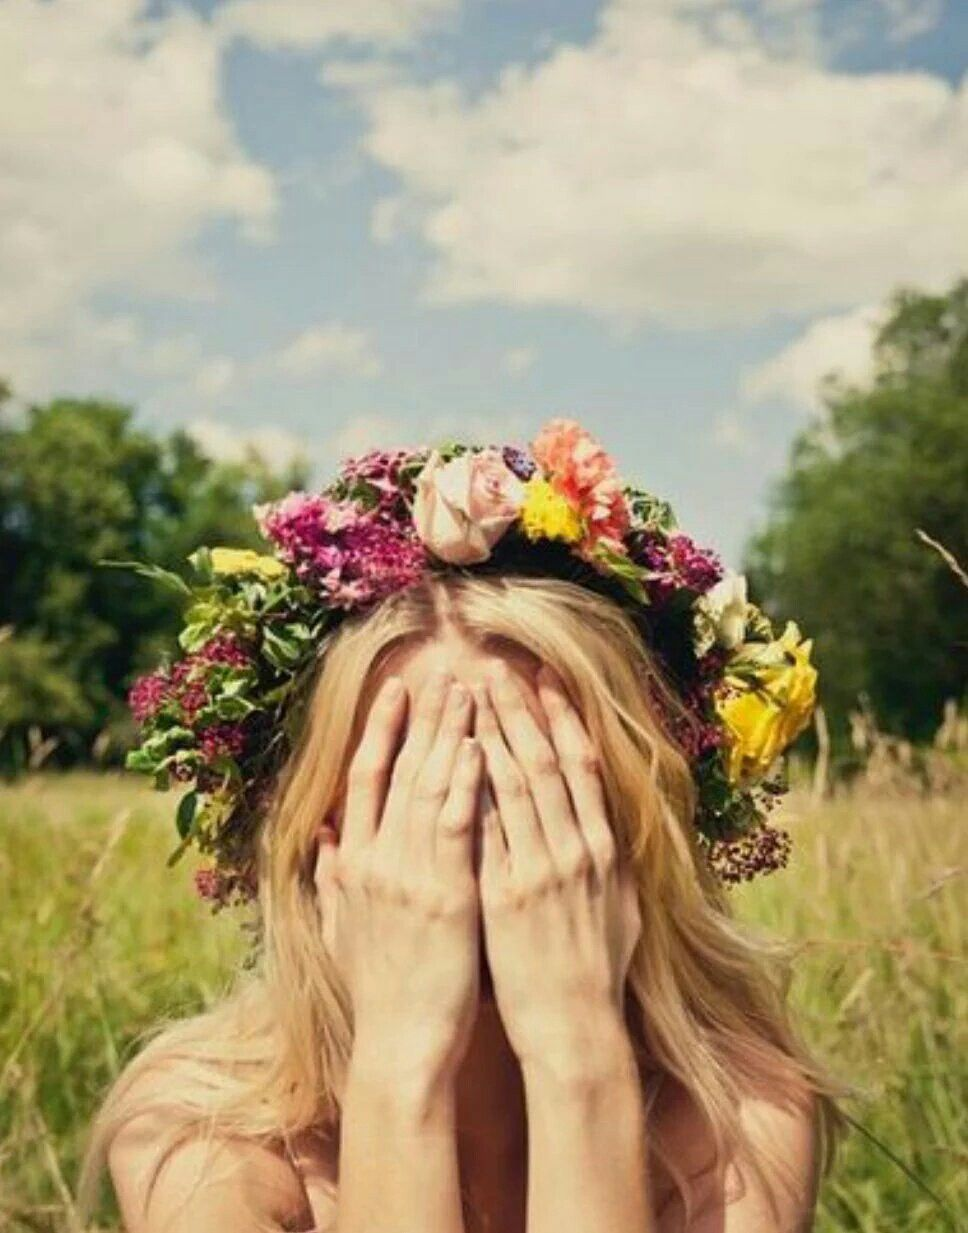 Pin by stephanie on aviheaderbackground pinterest header community 26 flower crowns that are perfect for your fall wedding izmirmasajfo